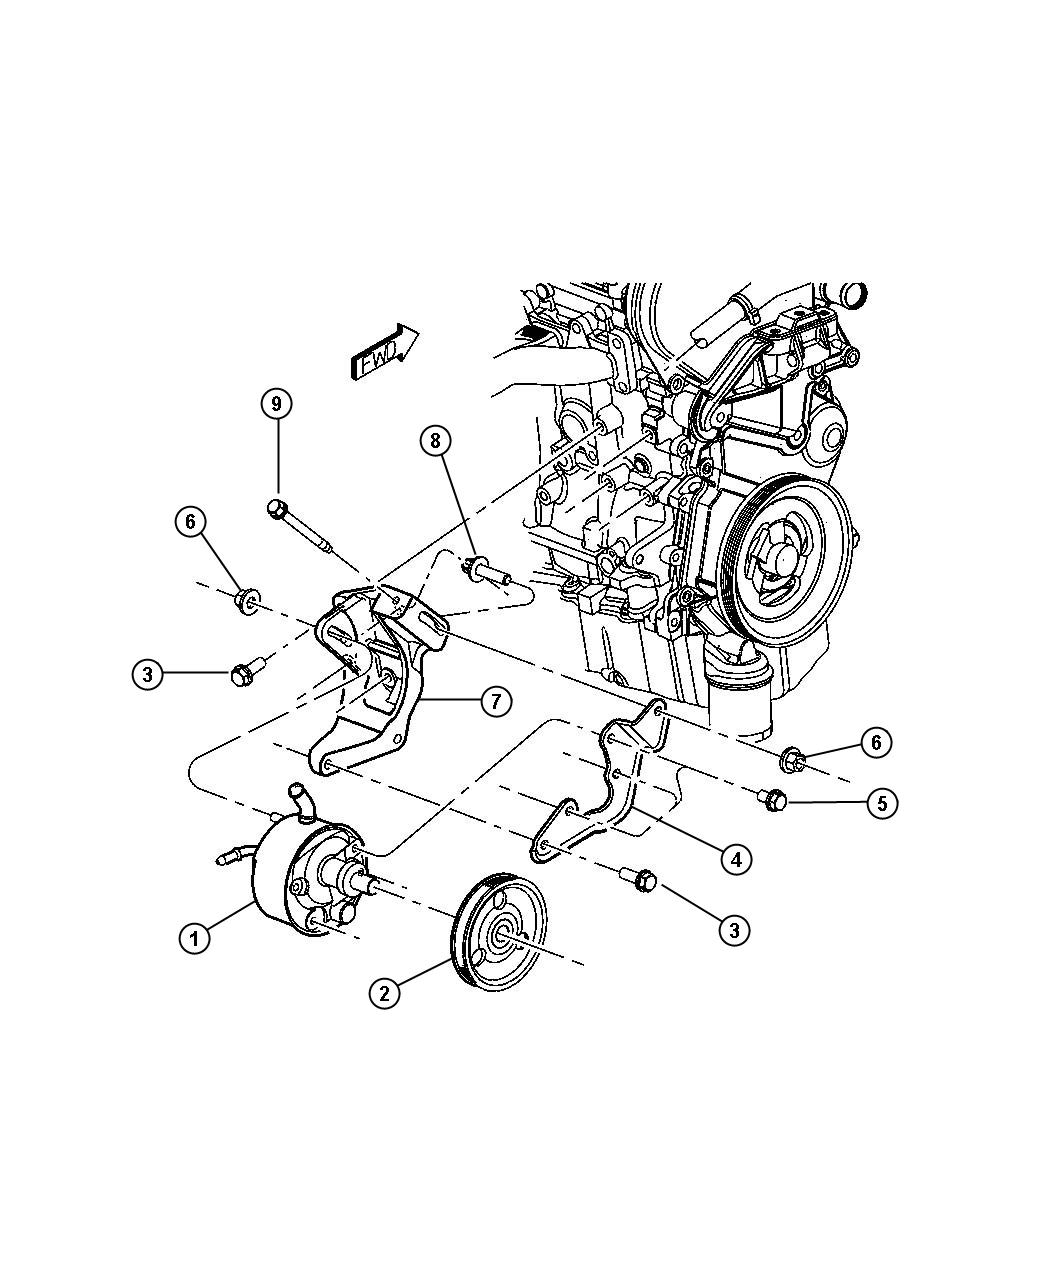 dodge stratus water pump diagram